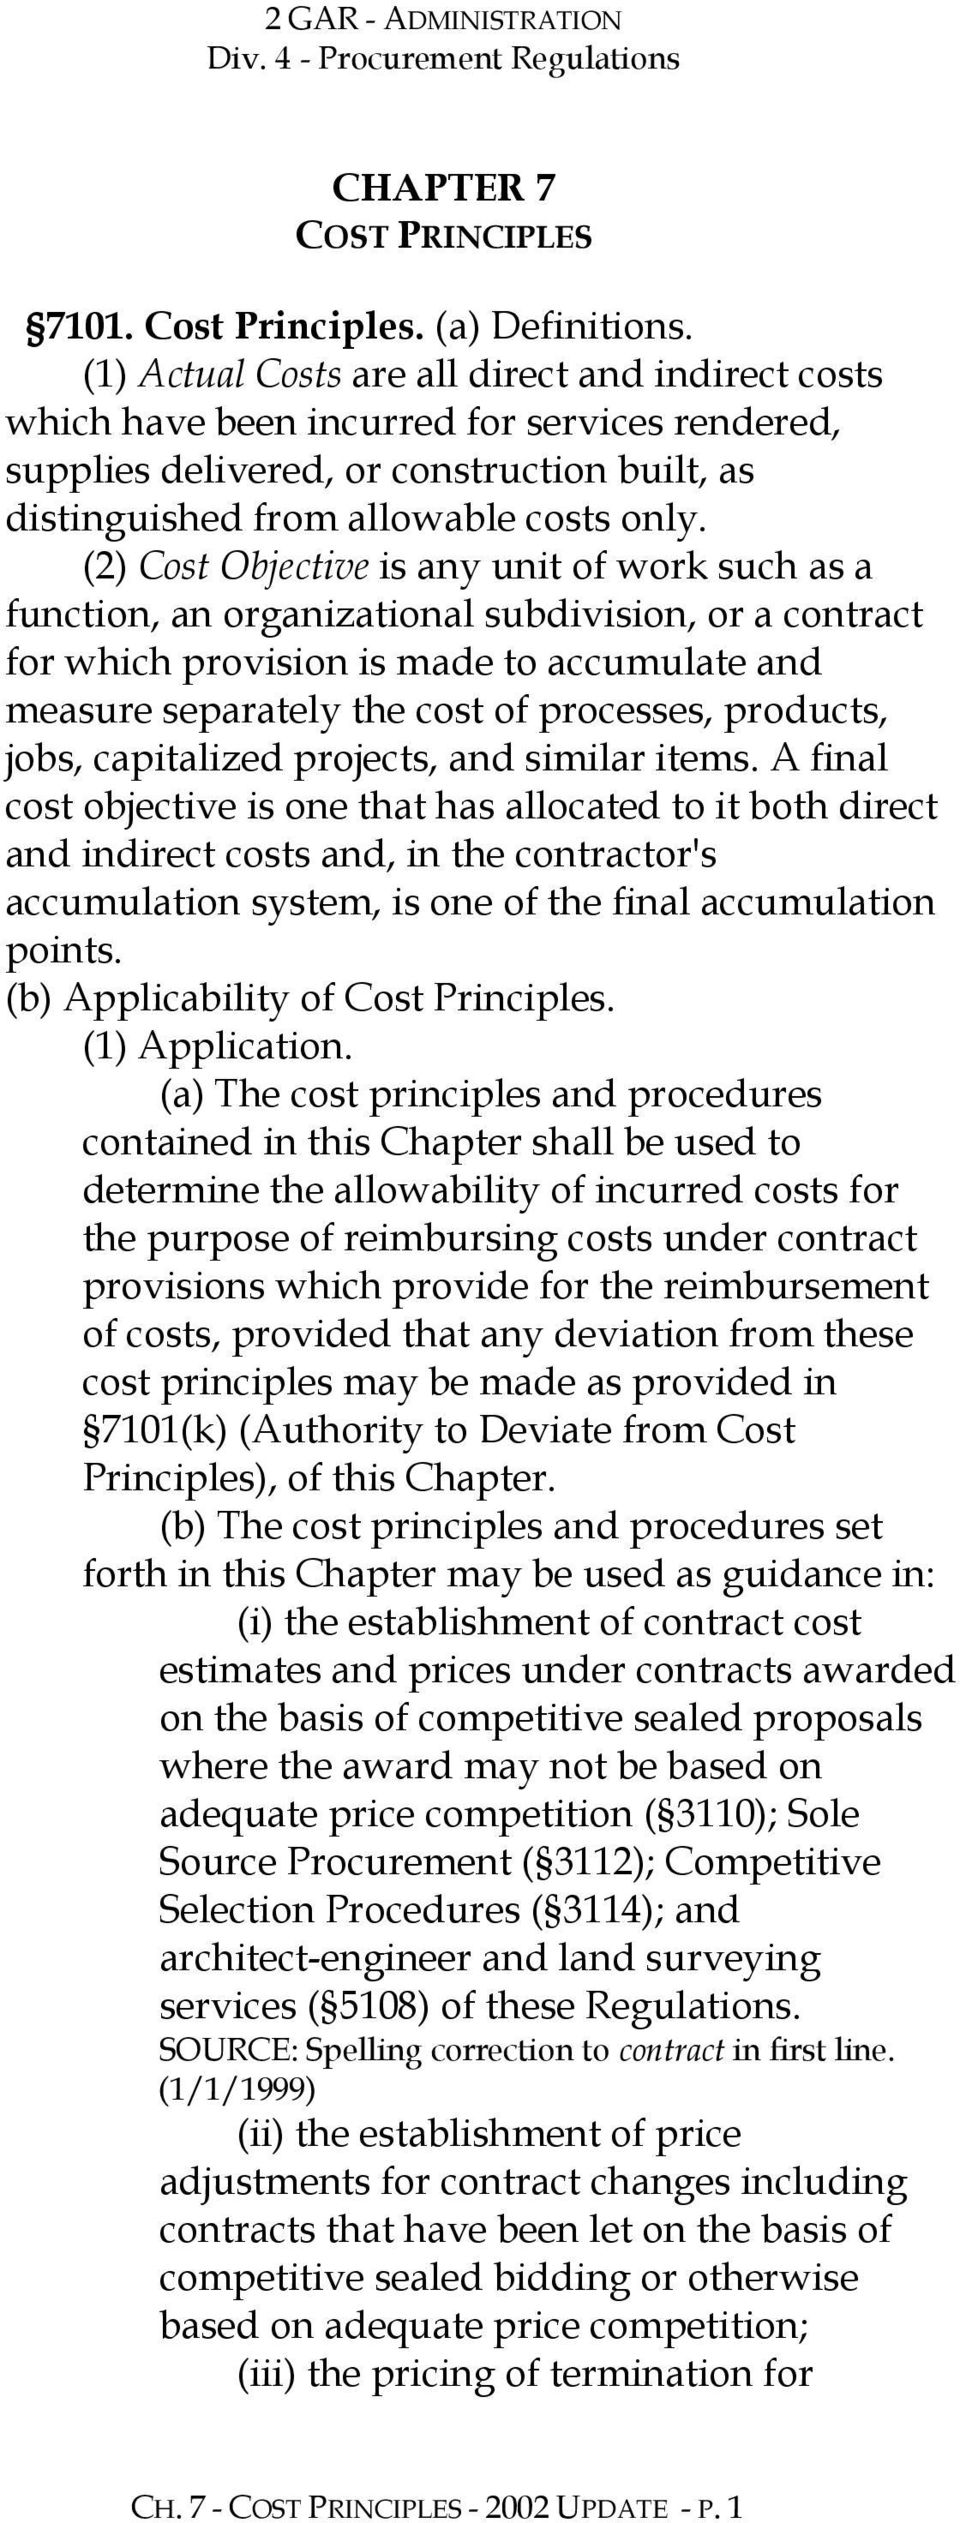 (2) Cost Objective is any unit of work such as a function, an organizational subdivision, or a contract for which provision is made to accumulate and measure separately the cost of processes,